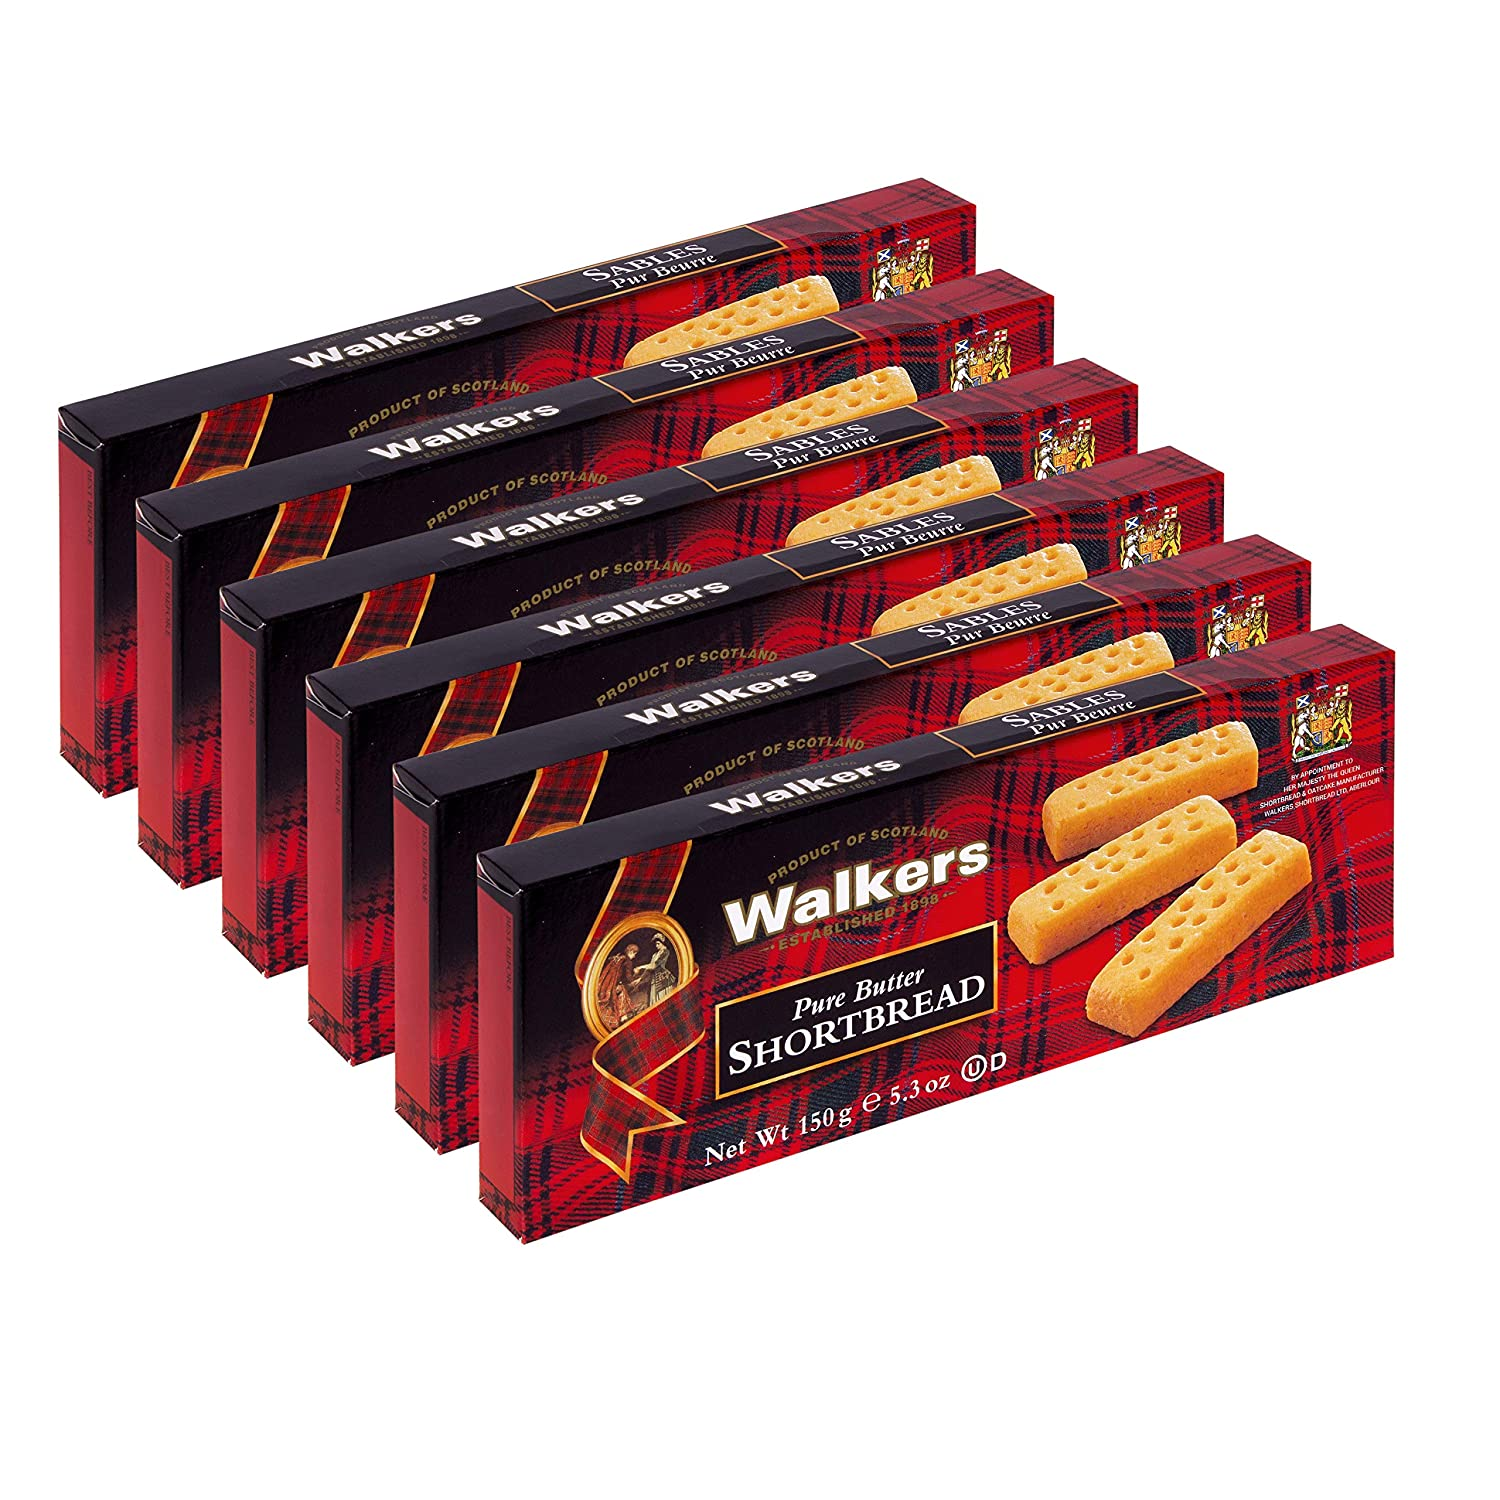 B001EO5Z4W Walkers Shortbread Fingers, 5.3 Ounces (Pack of 6) 91yiiJEOT6L